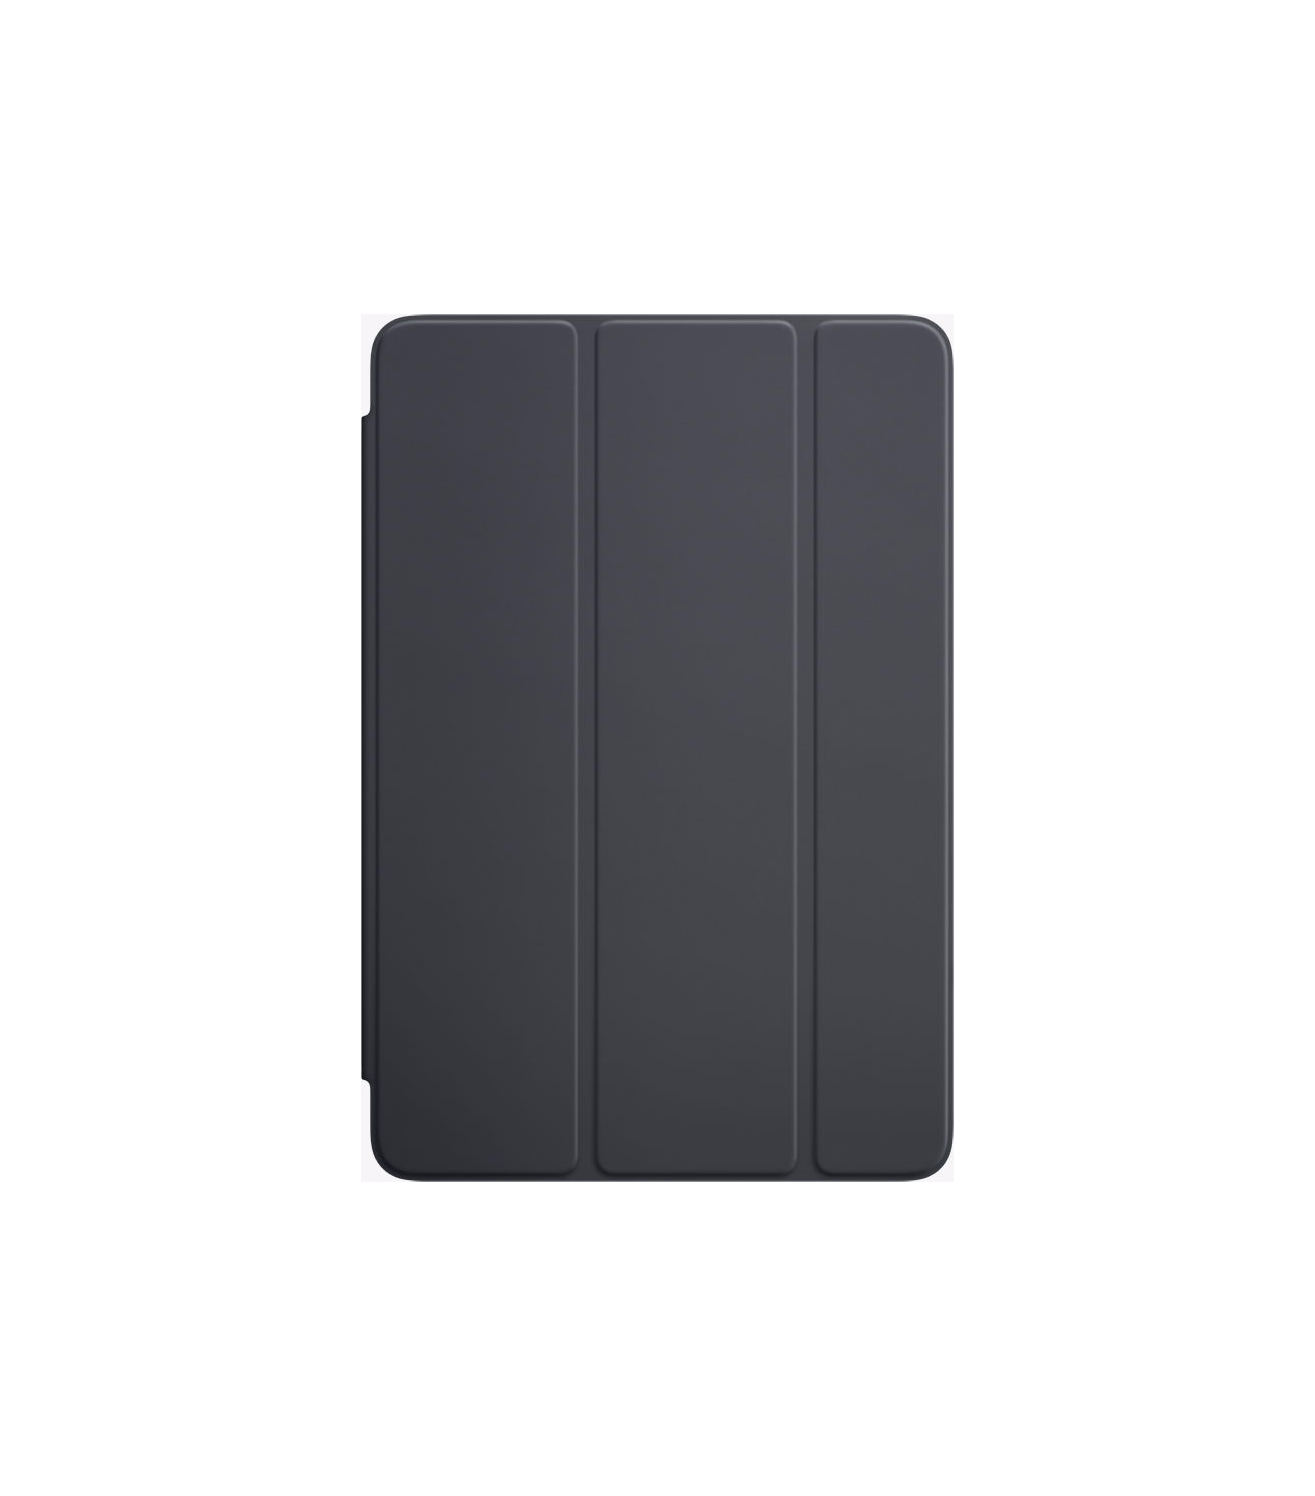 Apple Smart Cover for iPad mini 4 Gray for $7.99